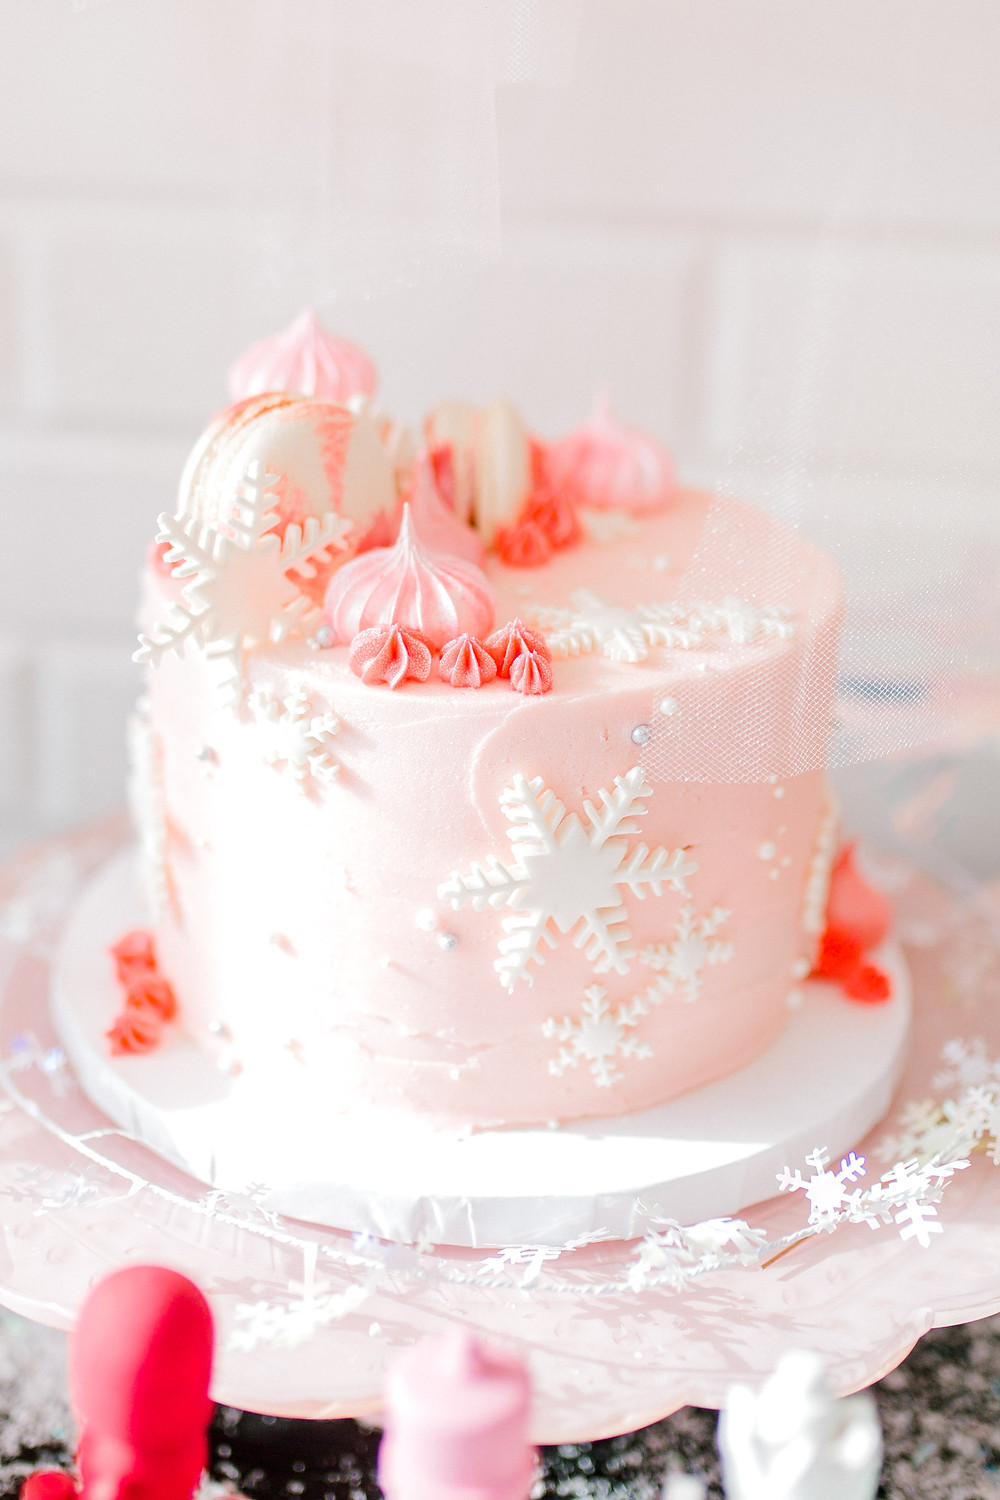 A pink nutcracker birthday cake with white snowflakes, white macarons, pink icing with beads on a white platter.